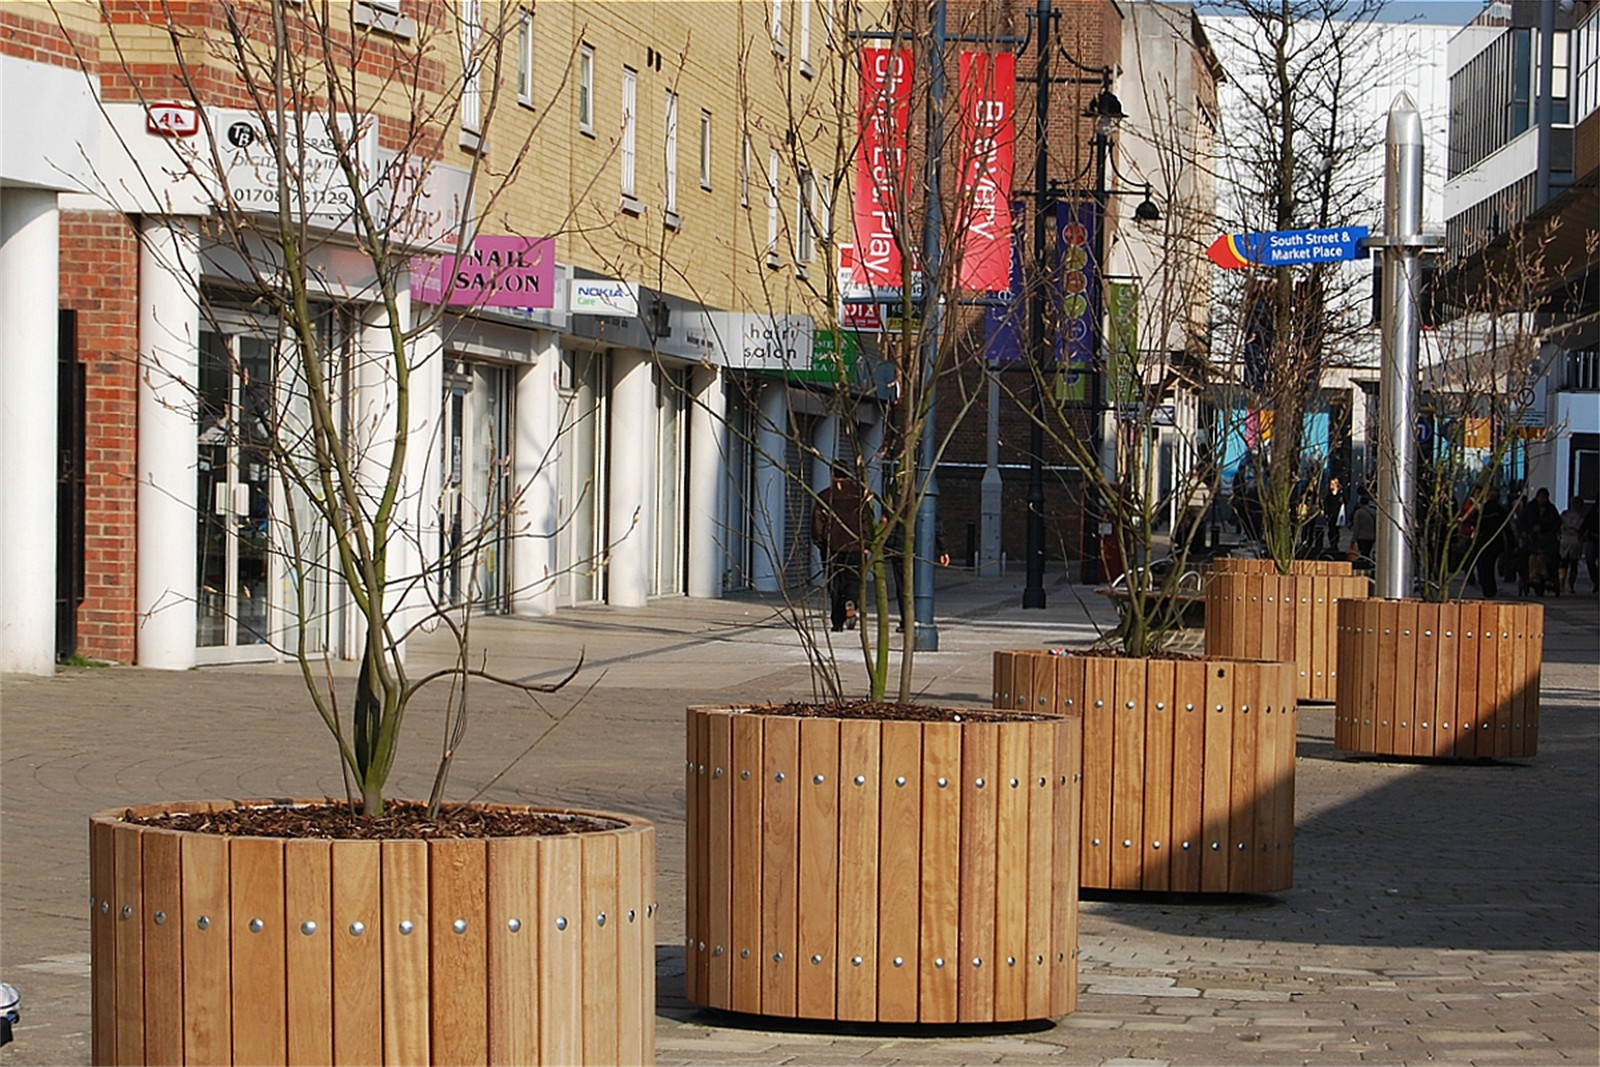 c12506 - Brewery Shopping Centre, tree planters